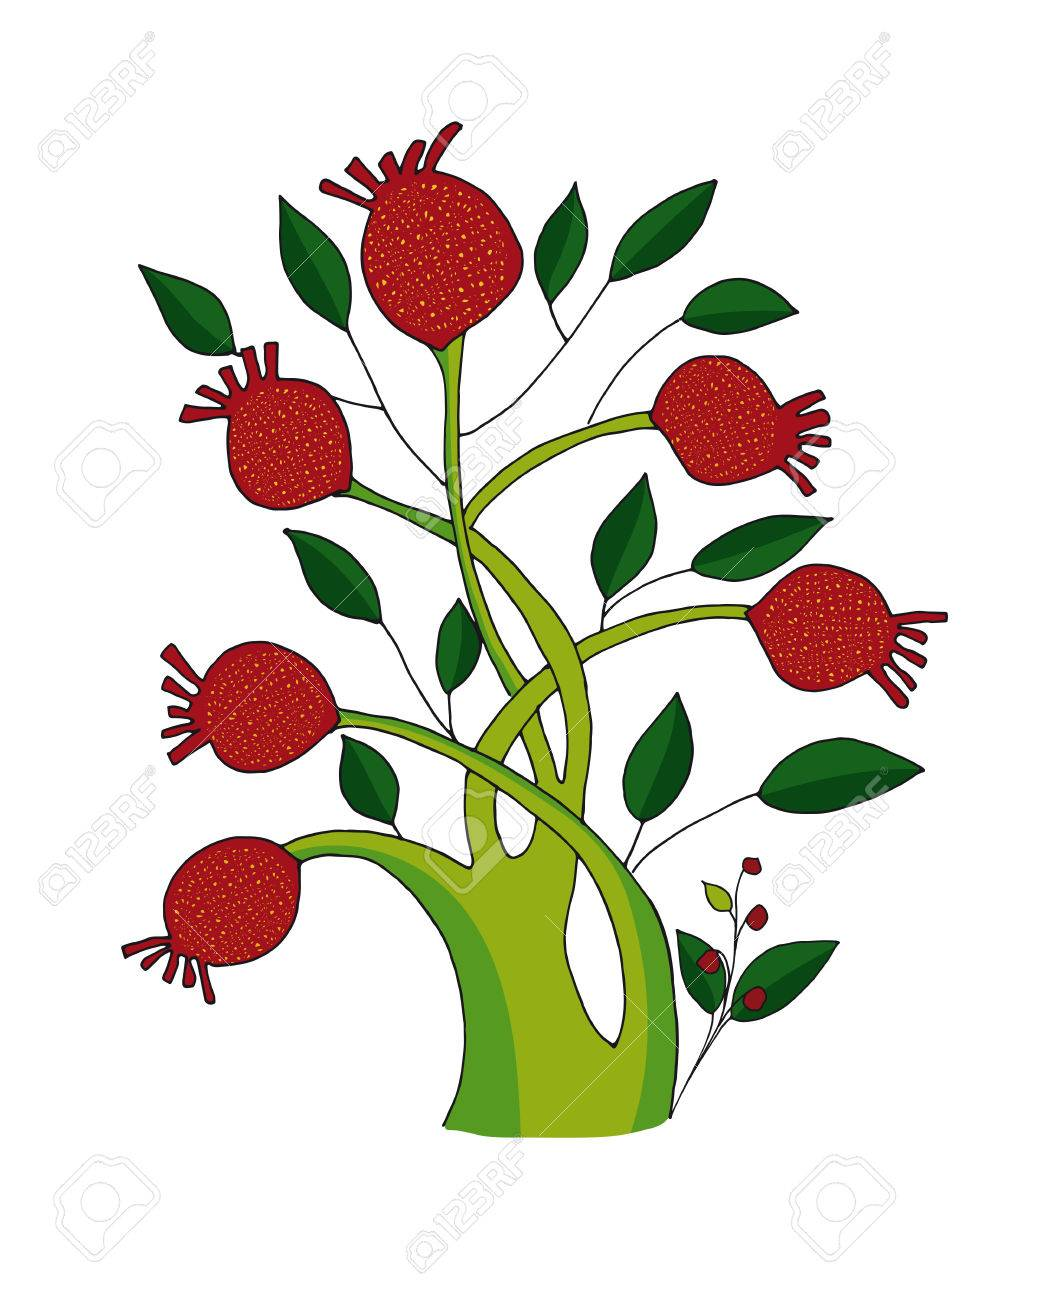 Pomegranate Tree On A Neutral Background Vector Illustration Royalty Free Cliparts Vectors And Stock Illustration Image 50717708